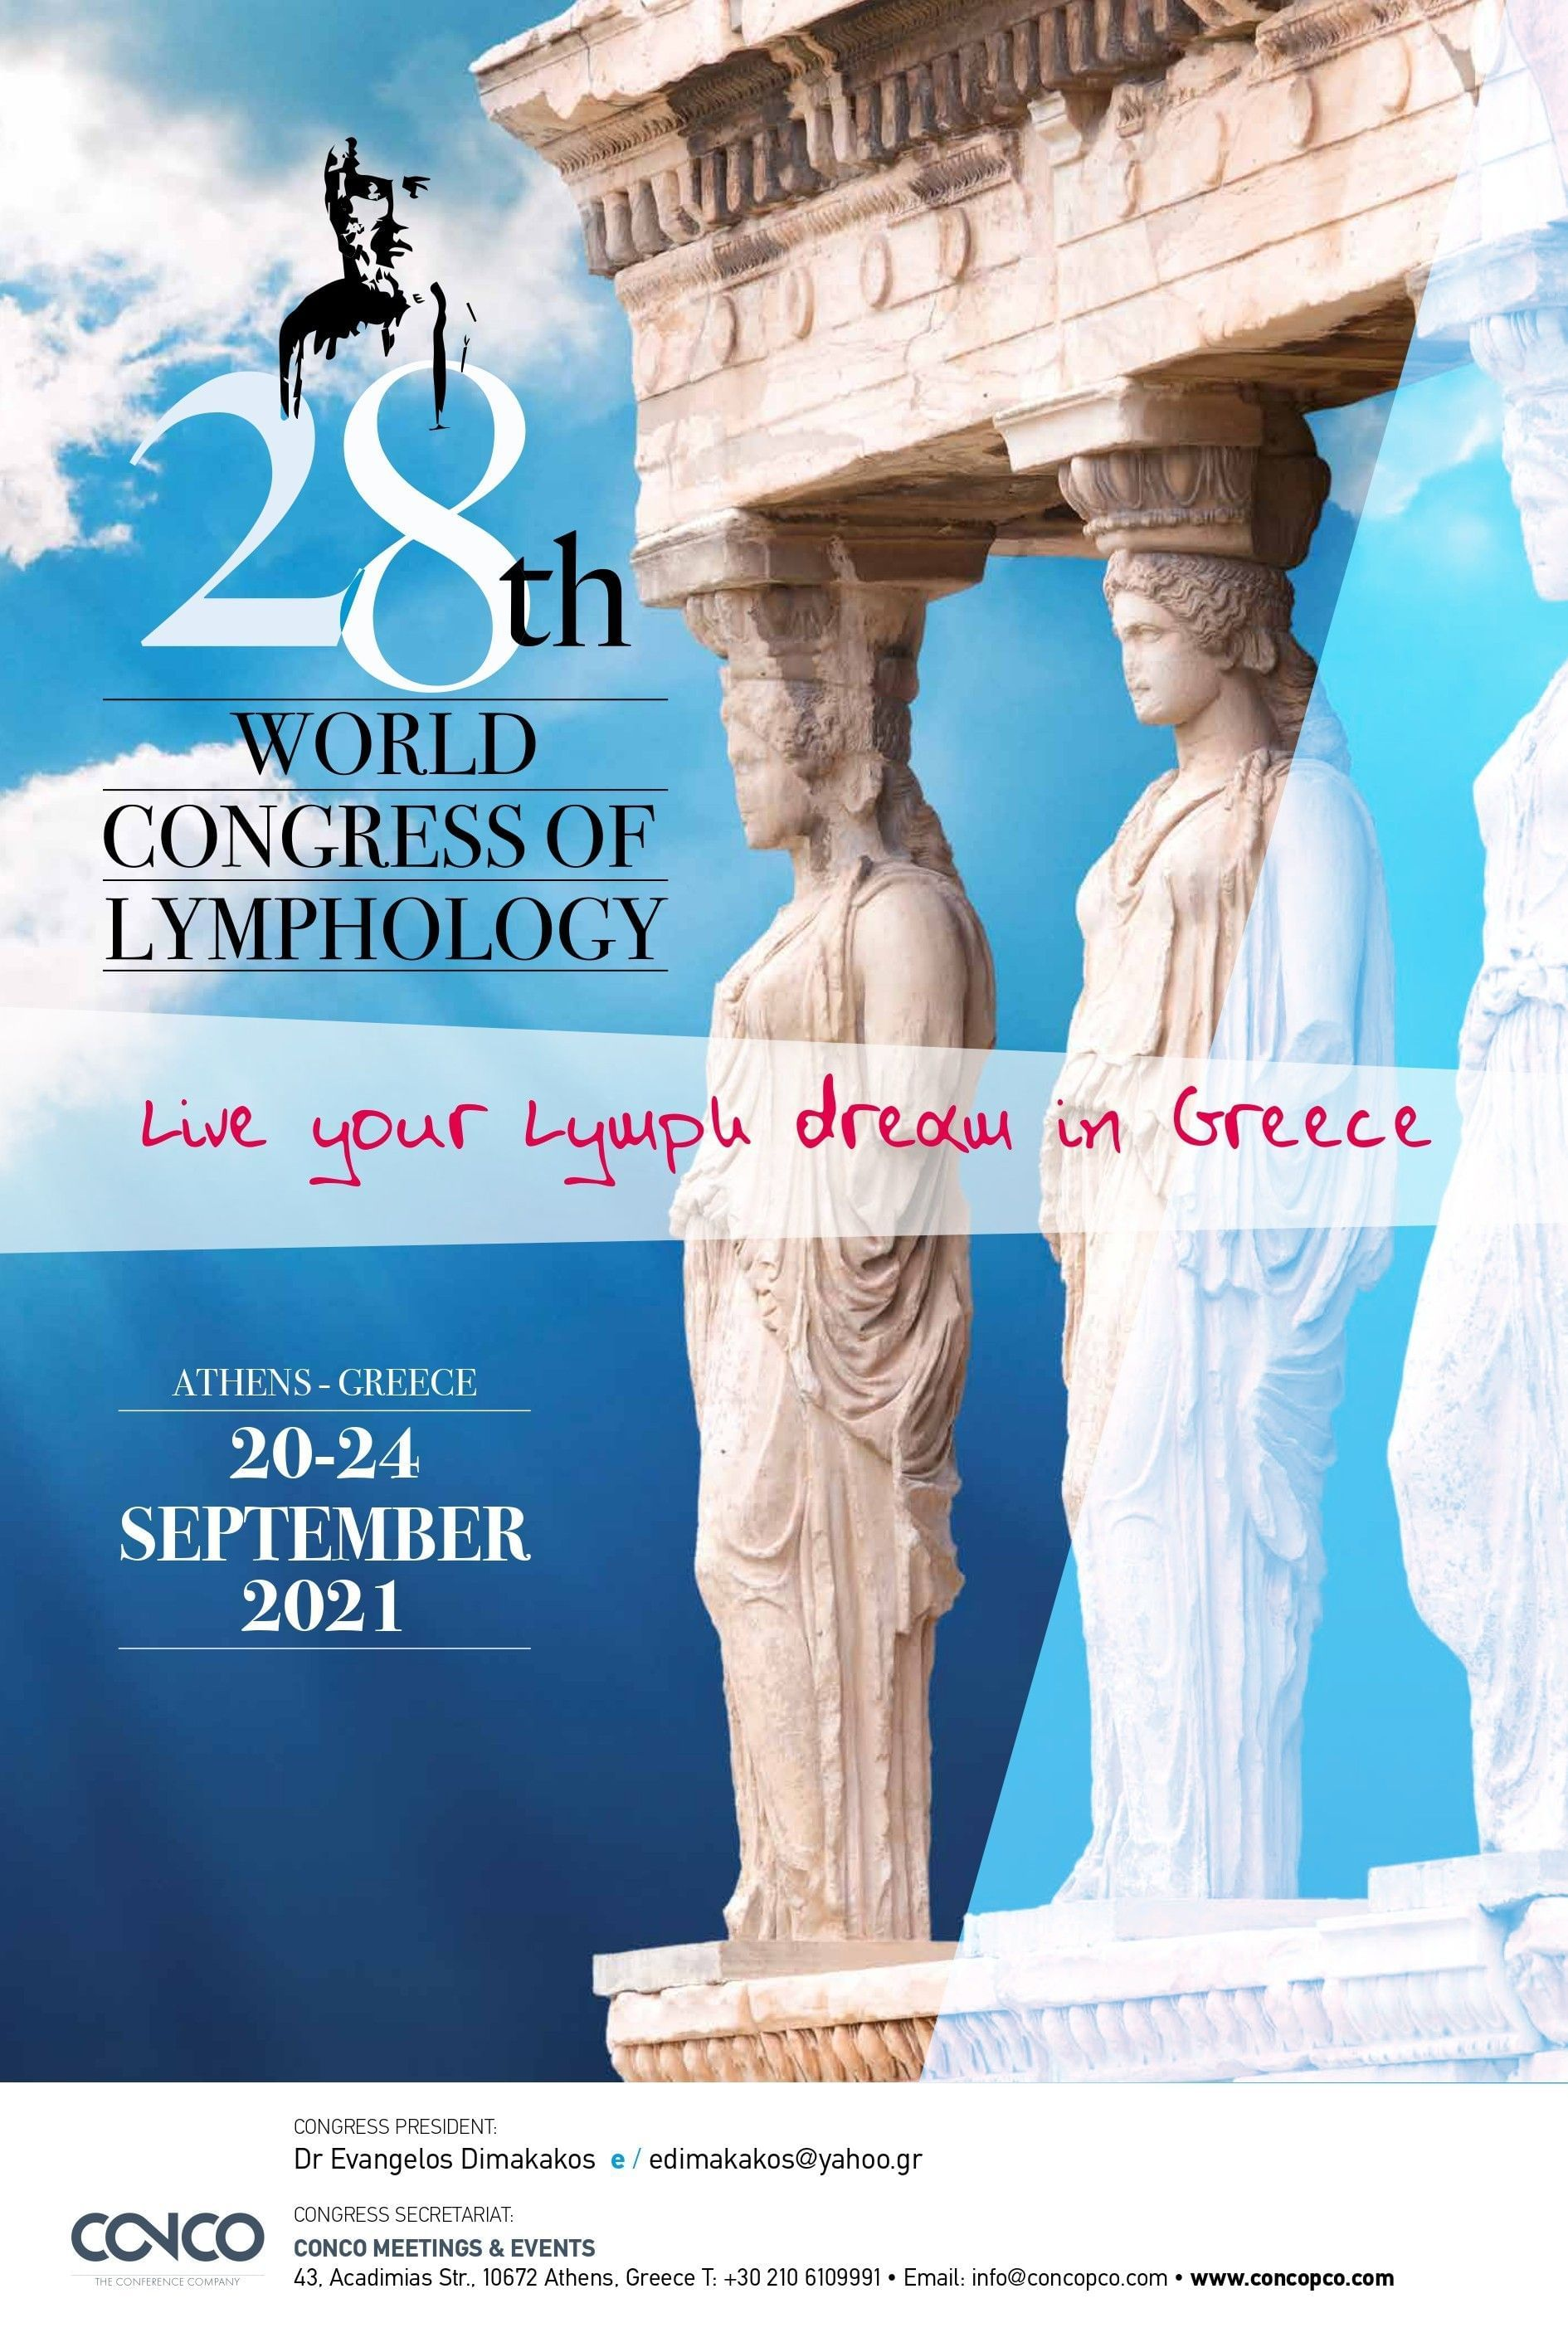 28th WORLD CONGRESS OF LYMPHOLOGY